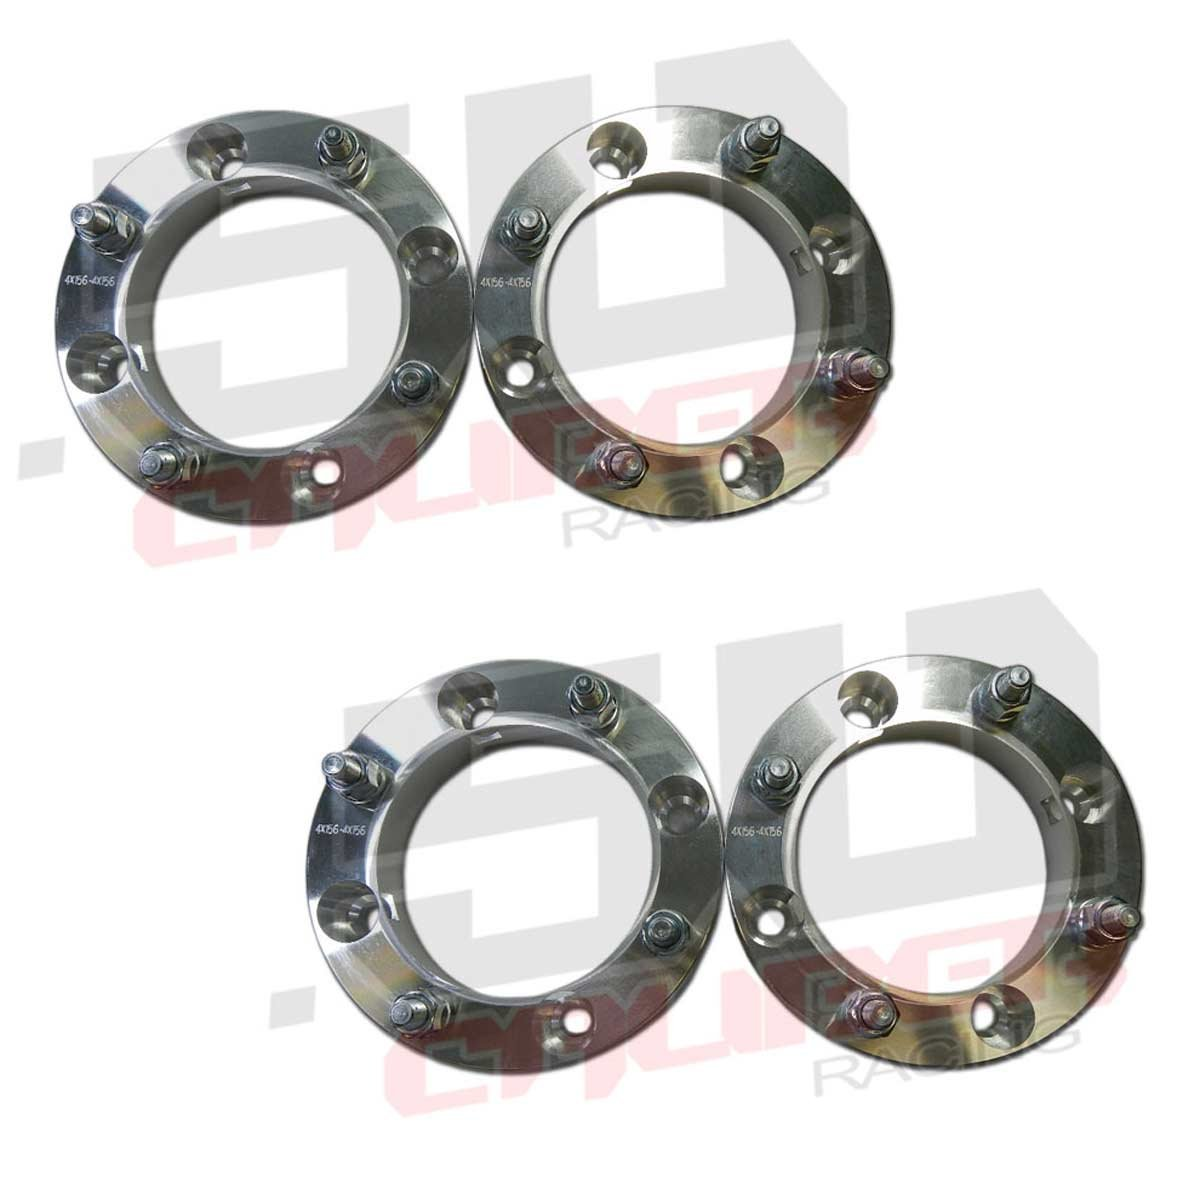 Set of Four (4) Wheel Spacers - 4x156 – 1.5 Inch Thick – 12x1.5mm Studs - Polaris XP1000, S 900, S 1000 and Ranger 2013-up [5286]